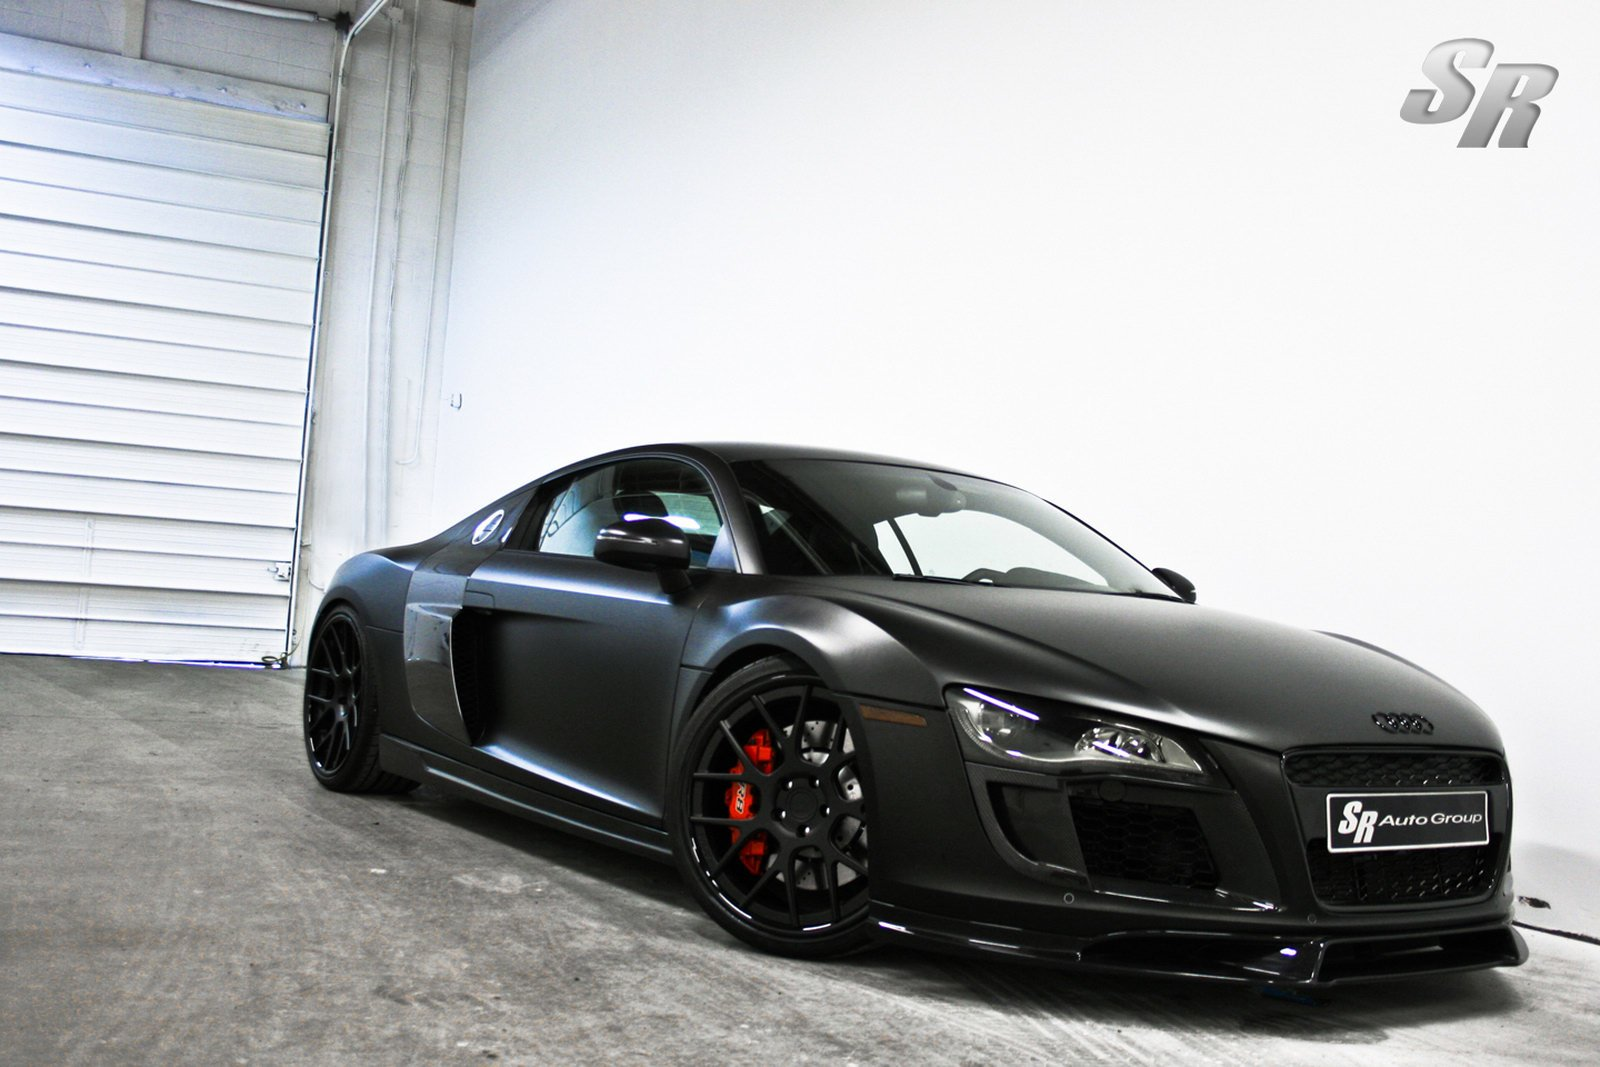 Latest Audi R8 Wallpaper Black Modified Cars Free Download